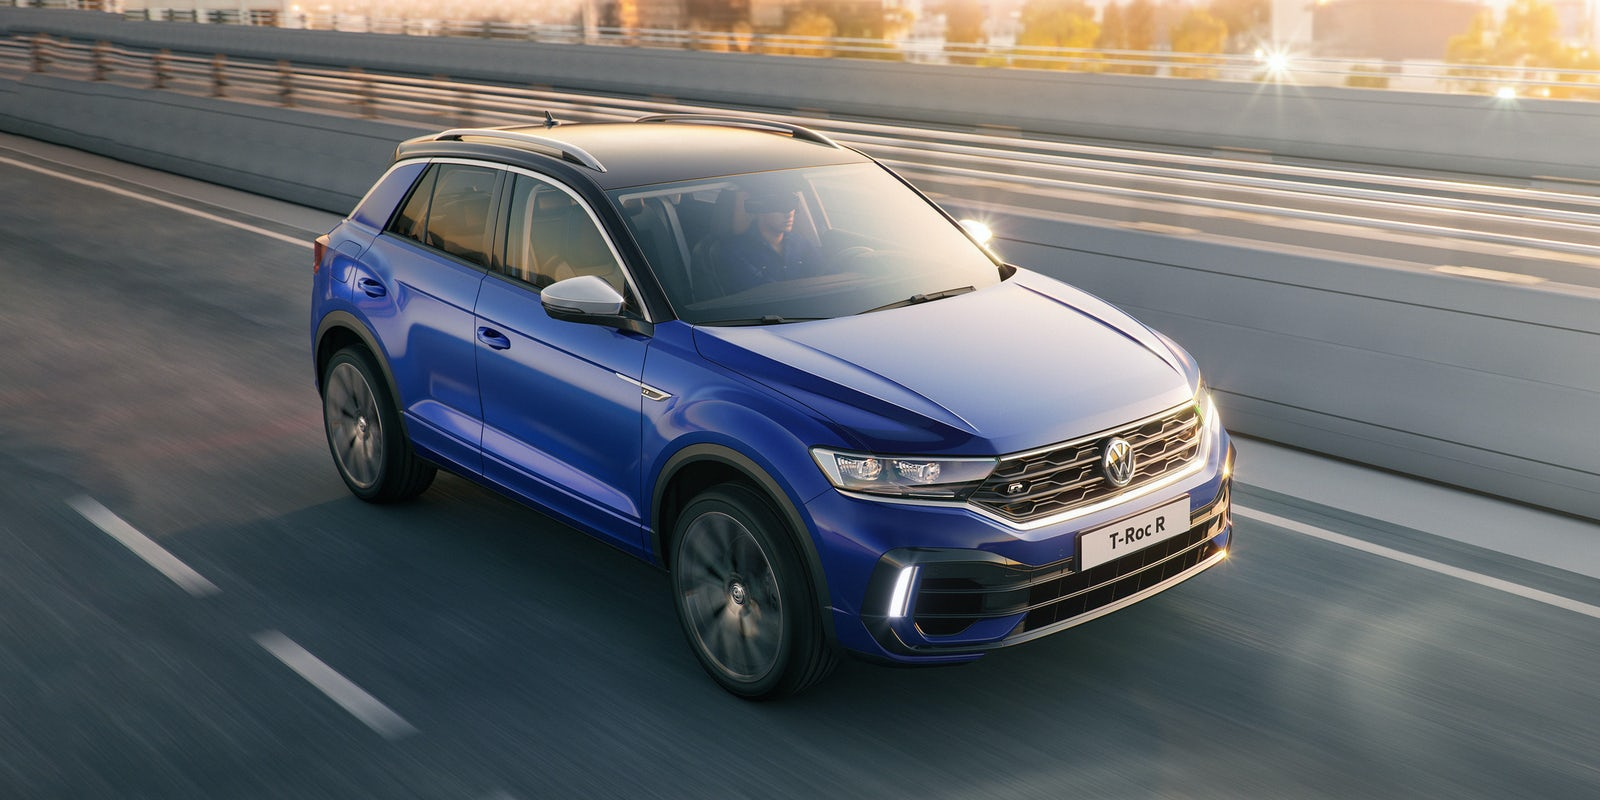 2019 VW Tiguan Release Date, Specs And Prices >> 2019 Vw T Roc R Price Specs And Release Date Carwow